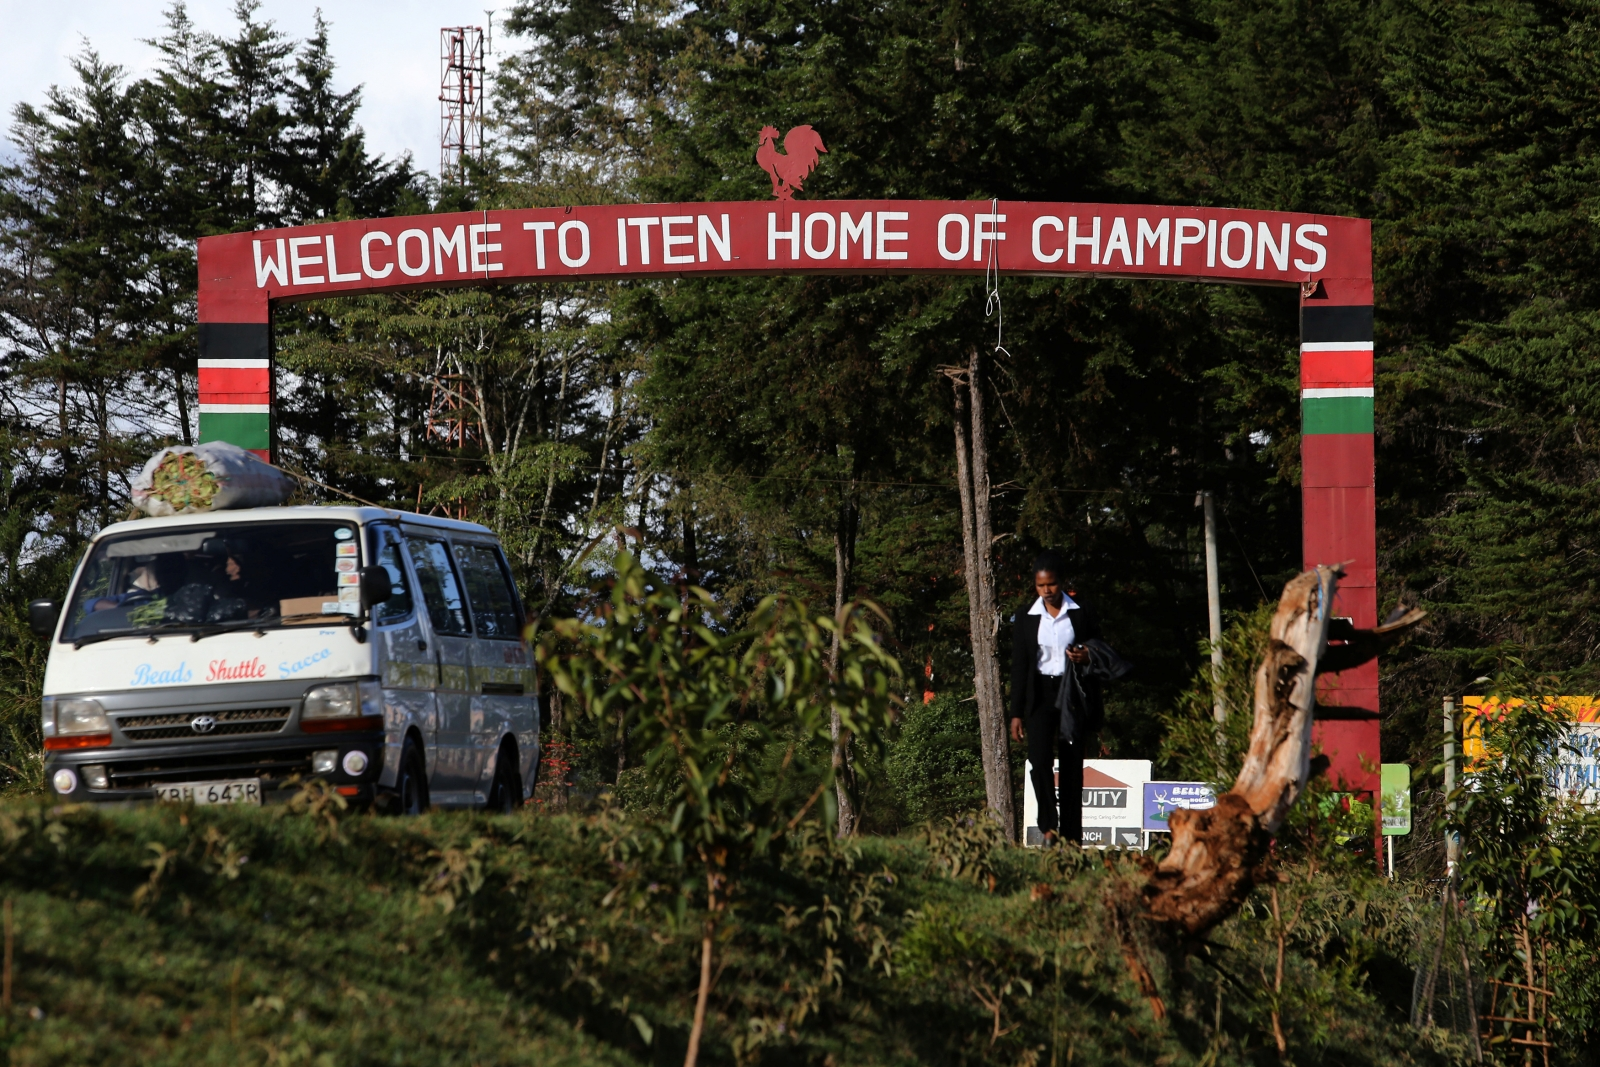 iten kenya athletics drugs sport